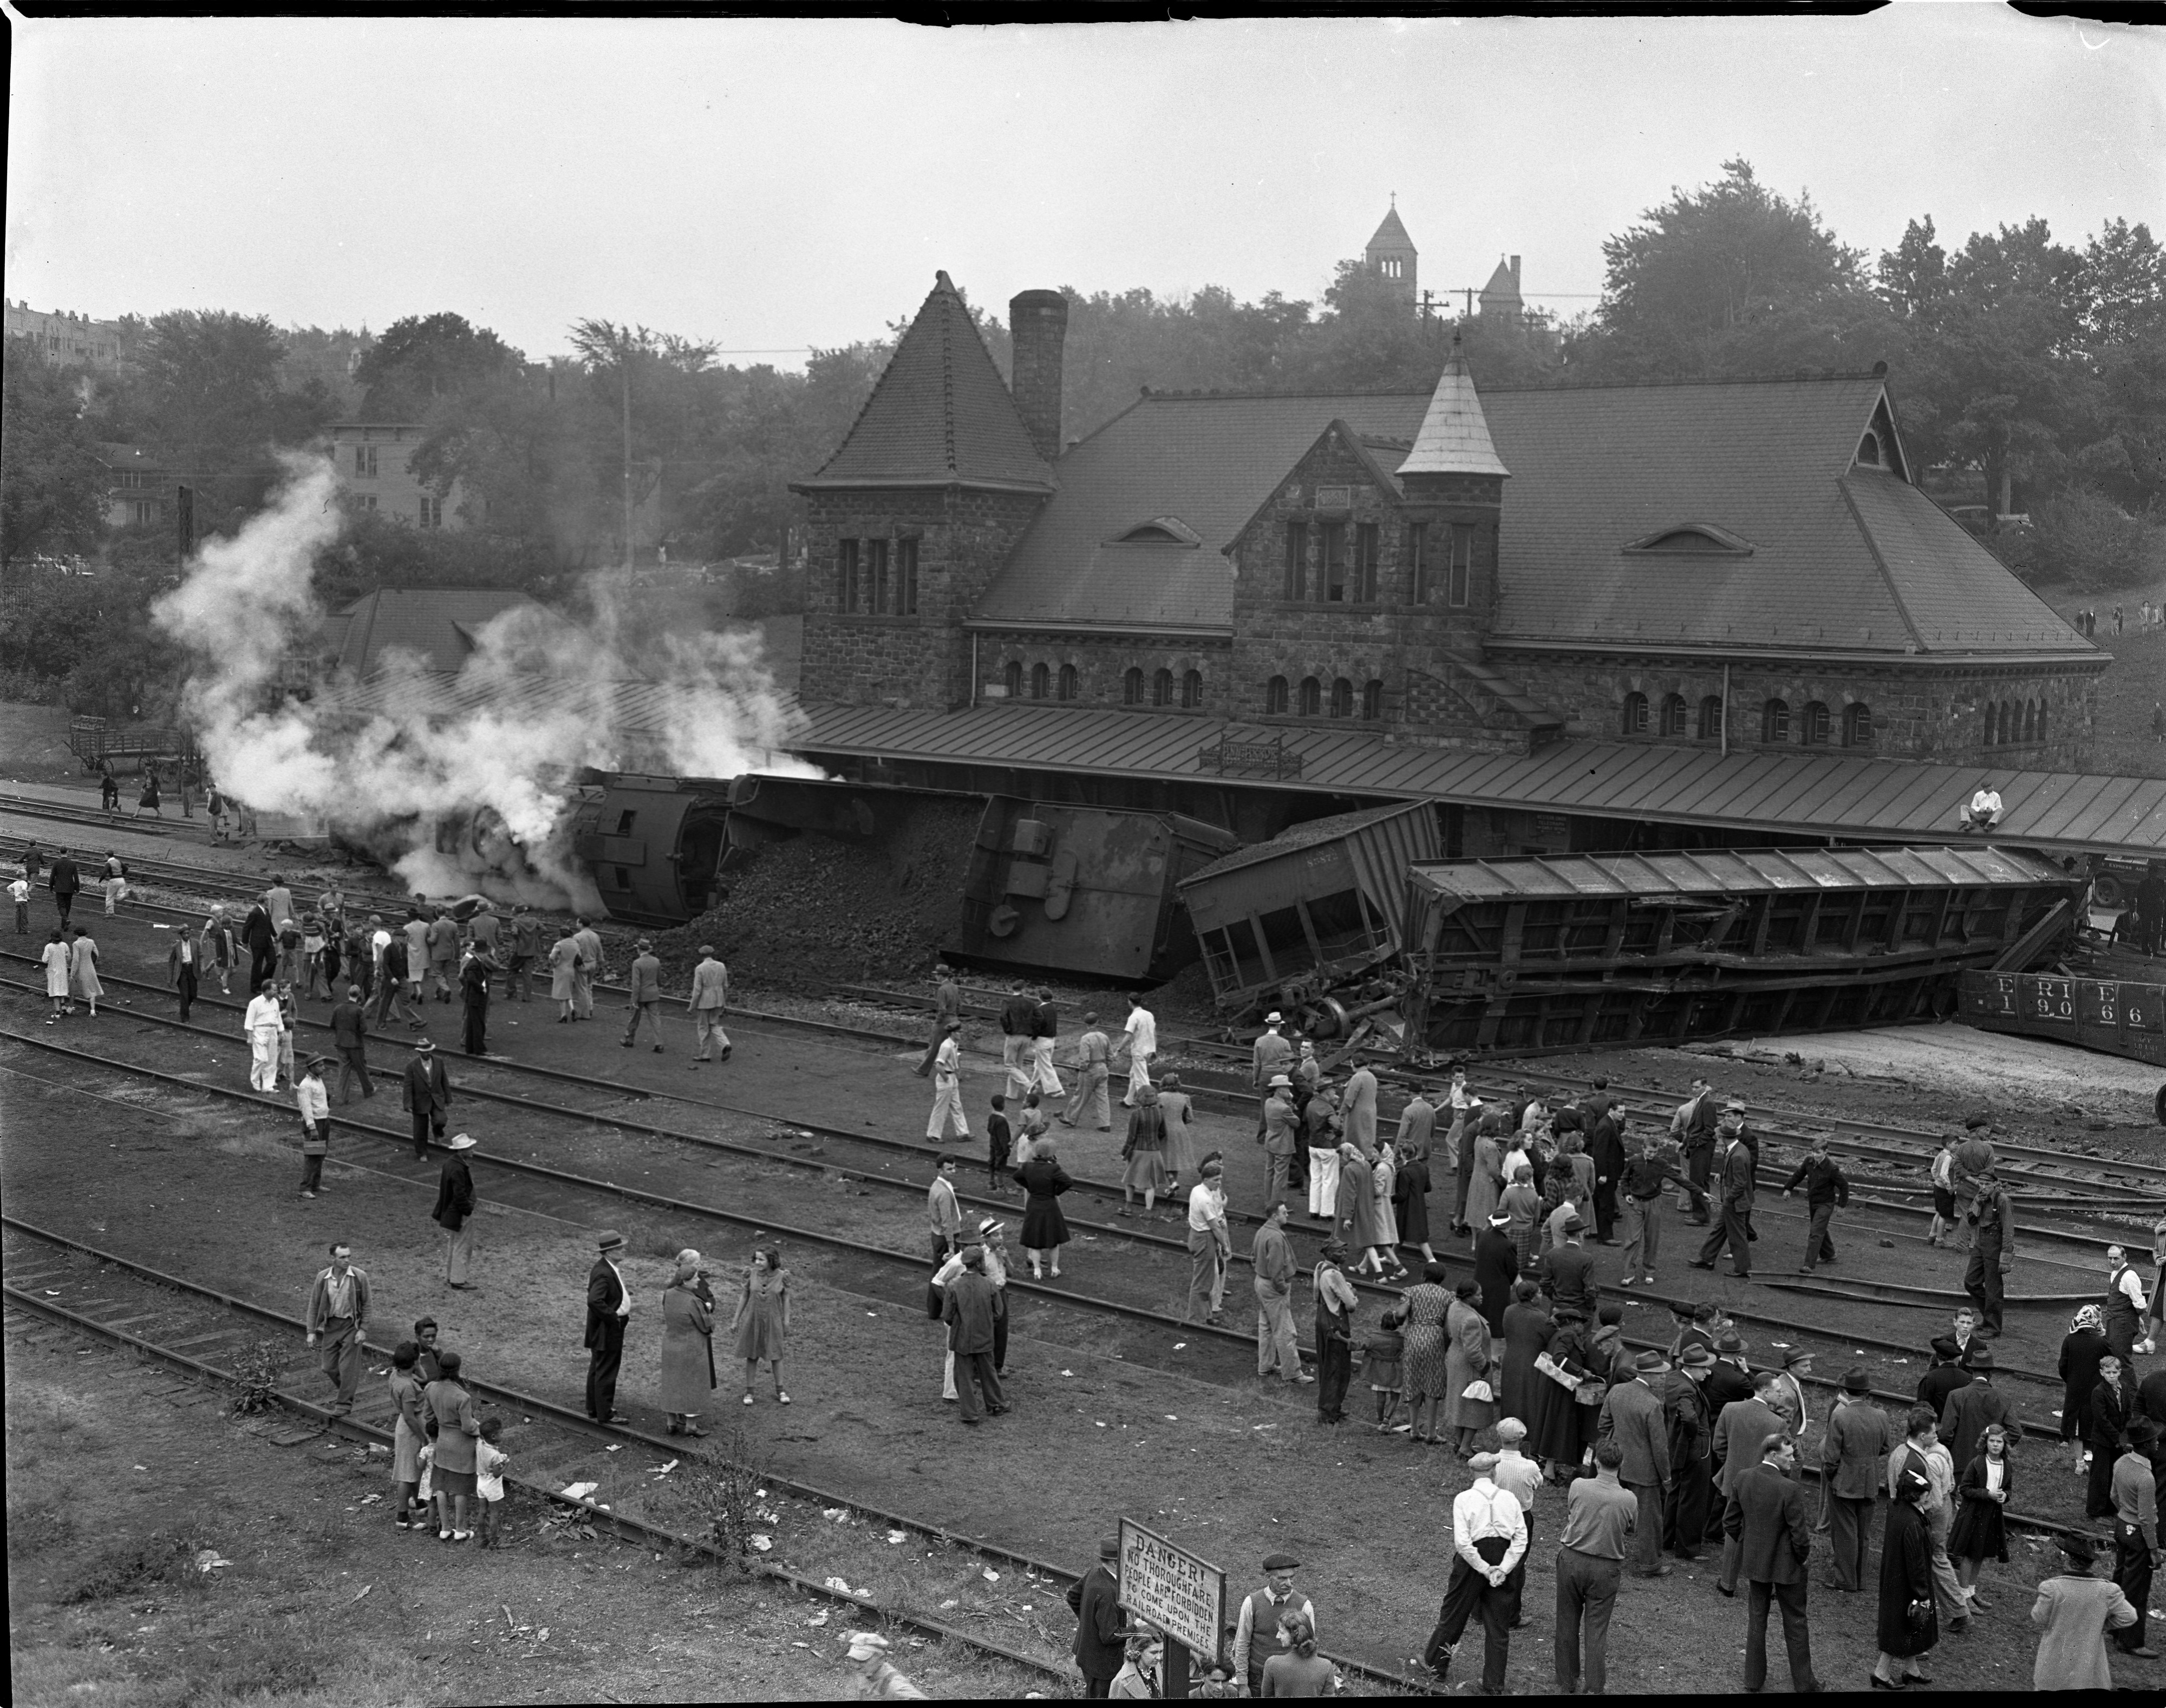 Engine Burning Oil >> Train Wreck at Michigan Central Station – September 16, 1940 | Rock on Trains